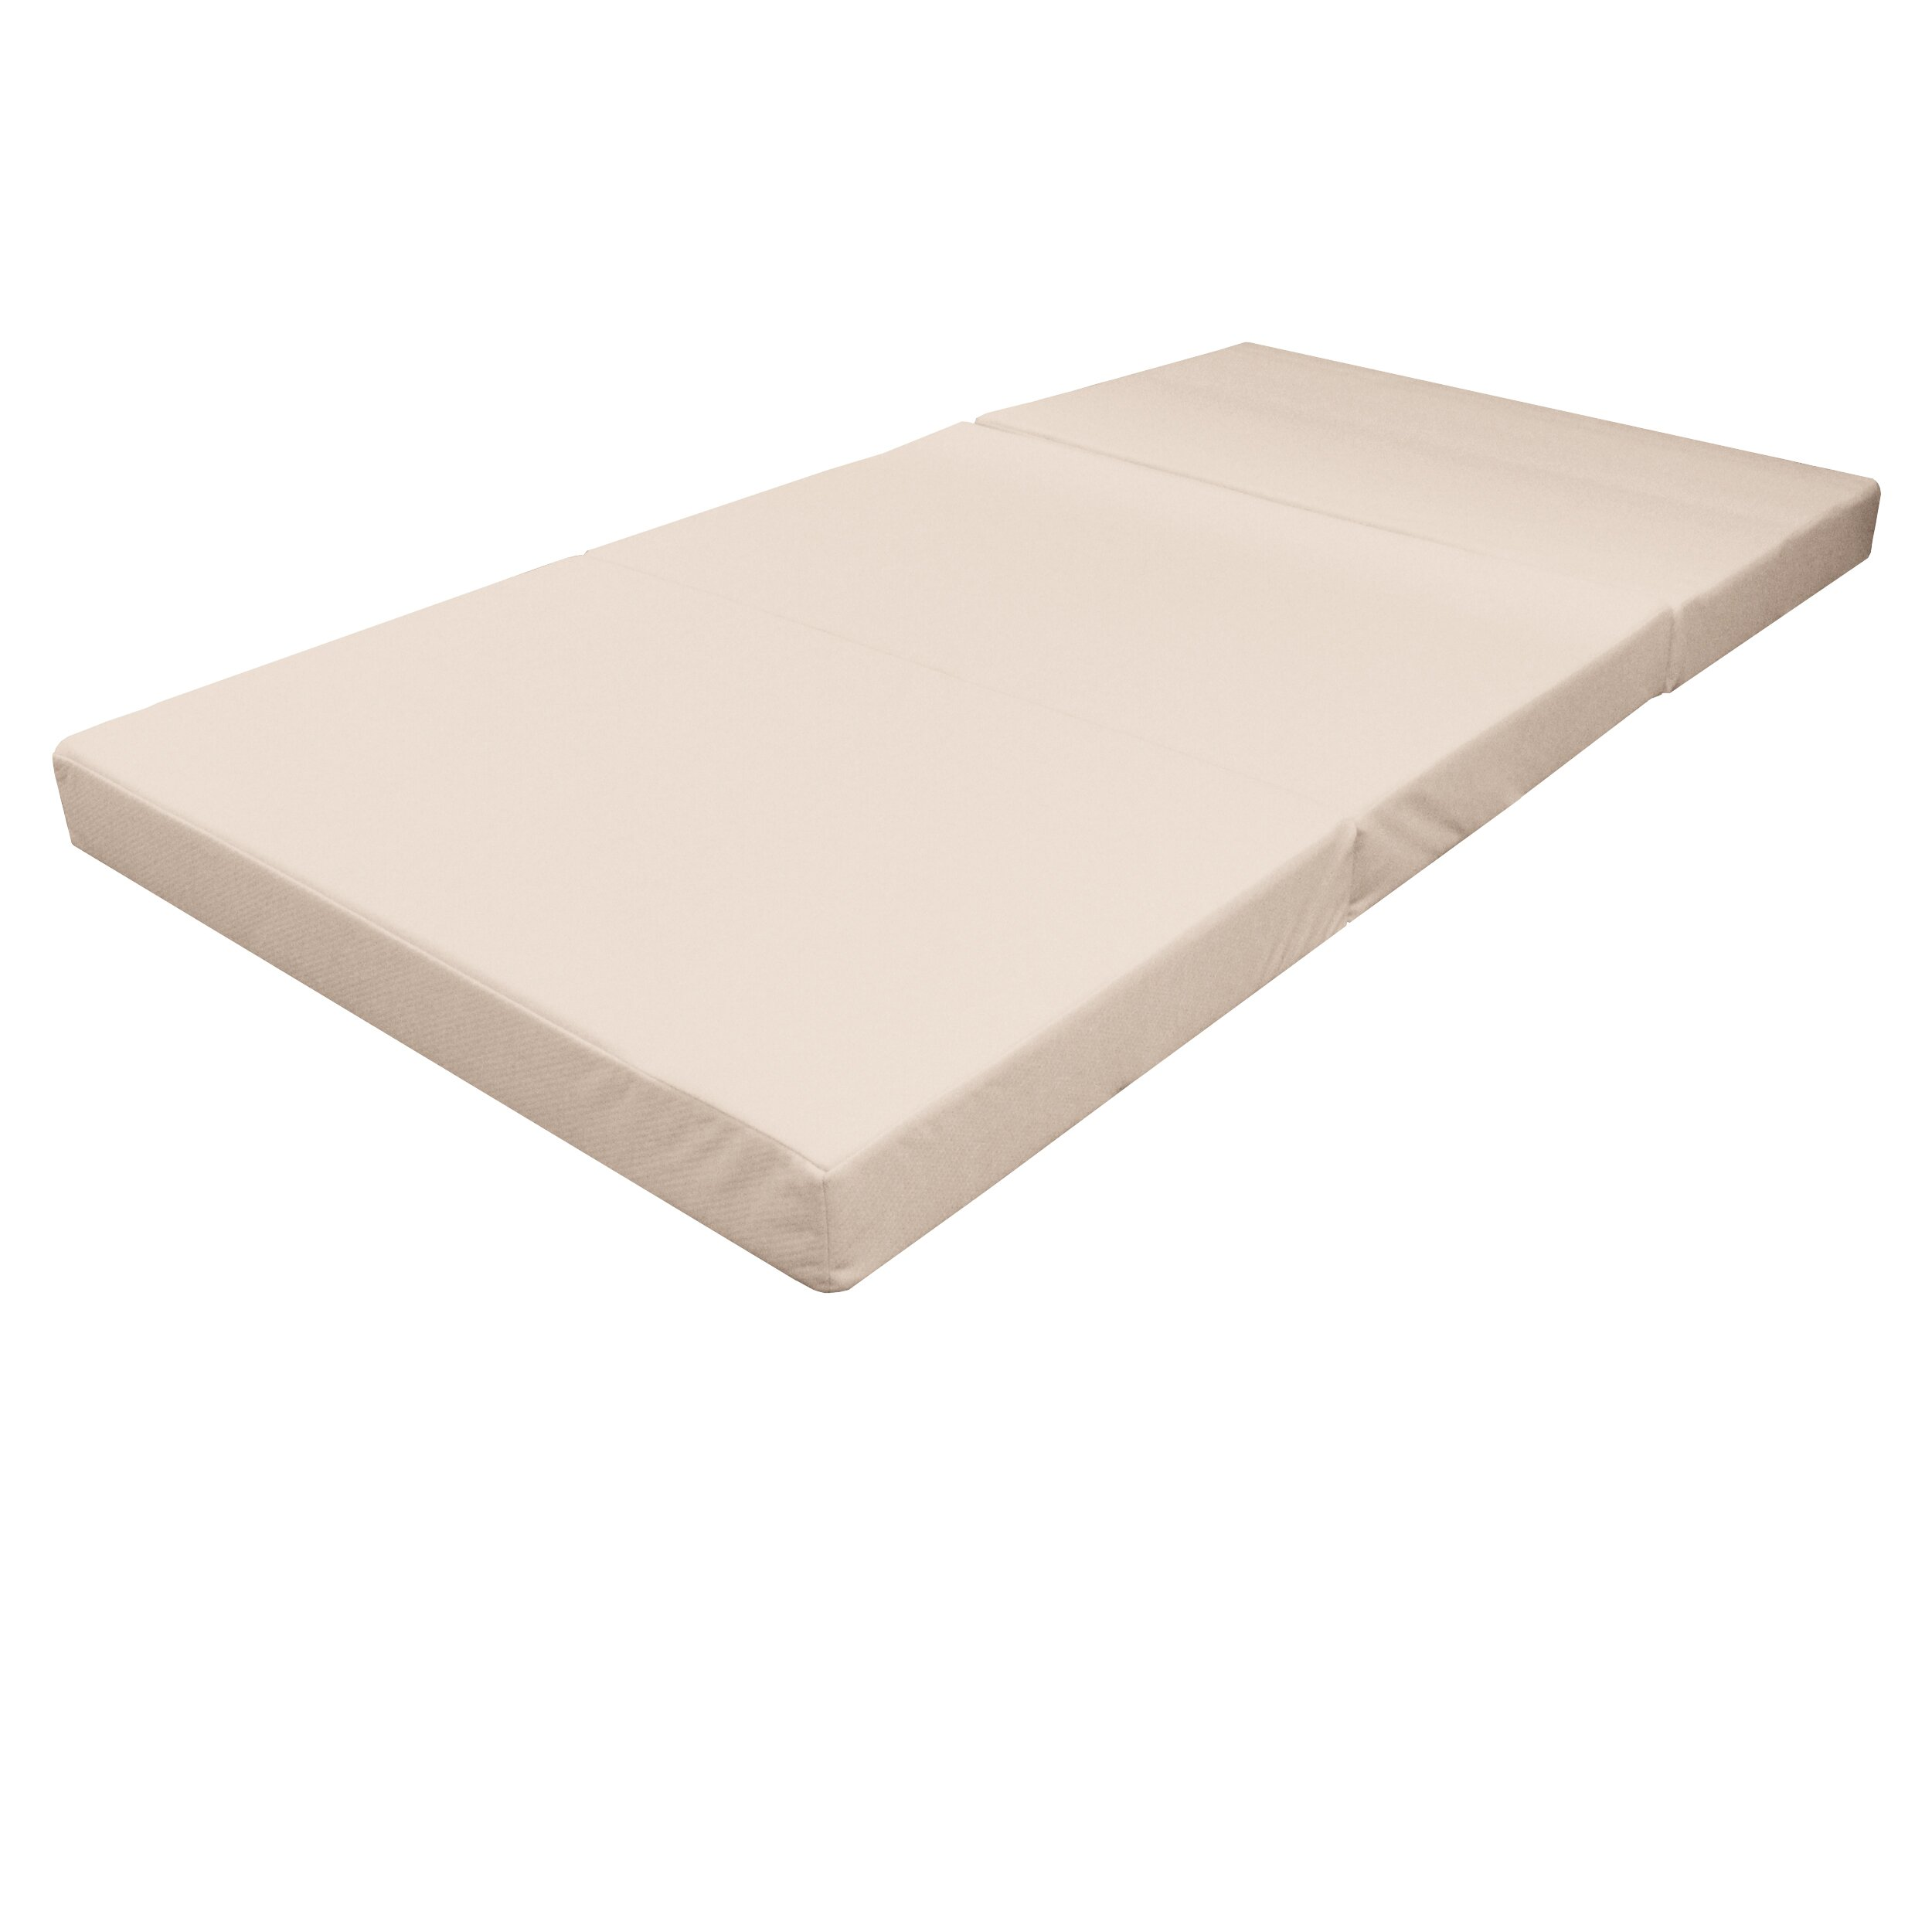 Innovex Memory Foam Mattress